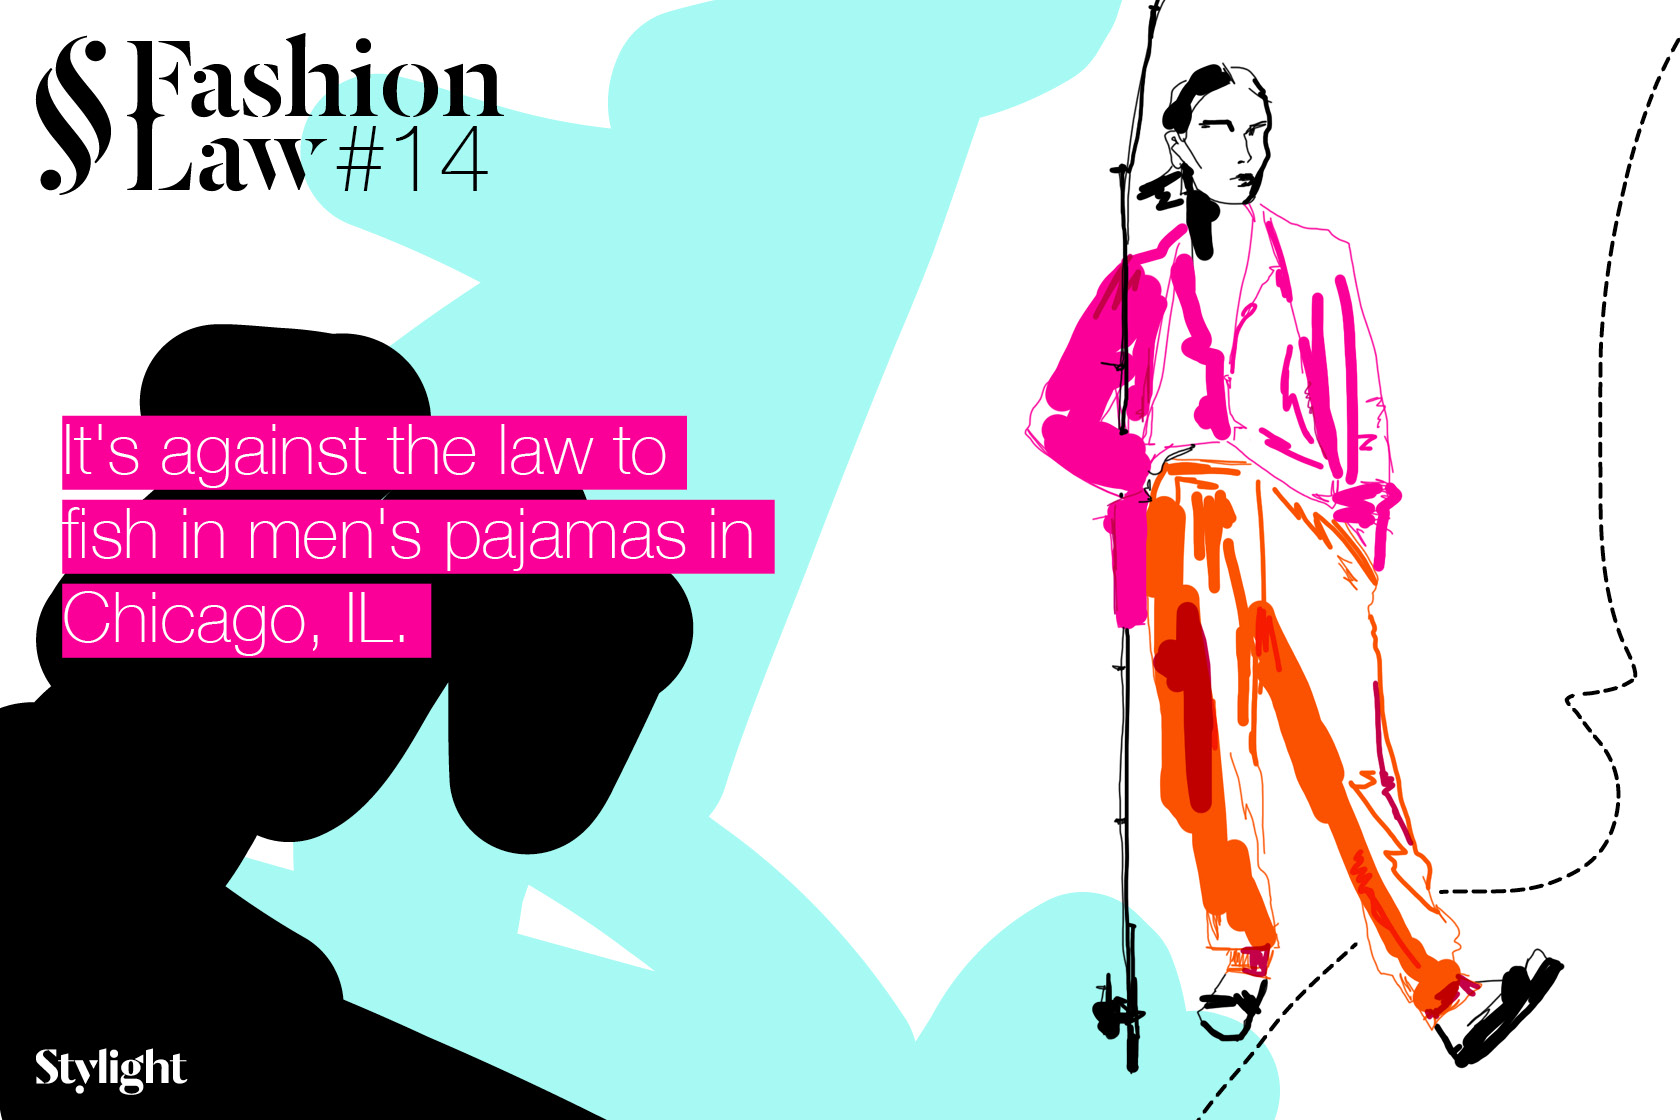 Fashion_Laws_Single-Slides_EN5